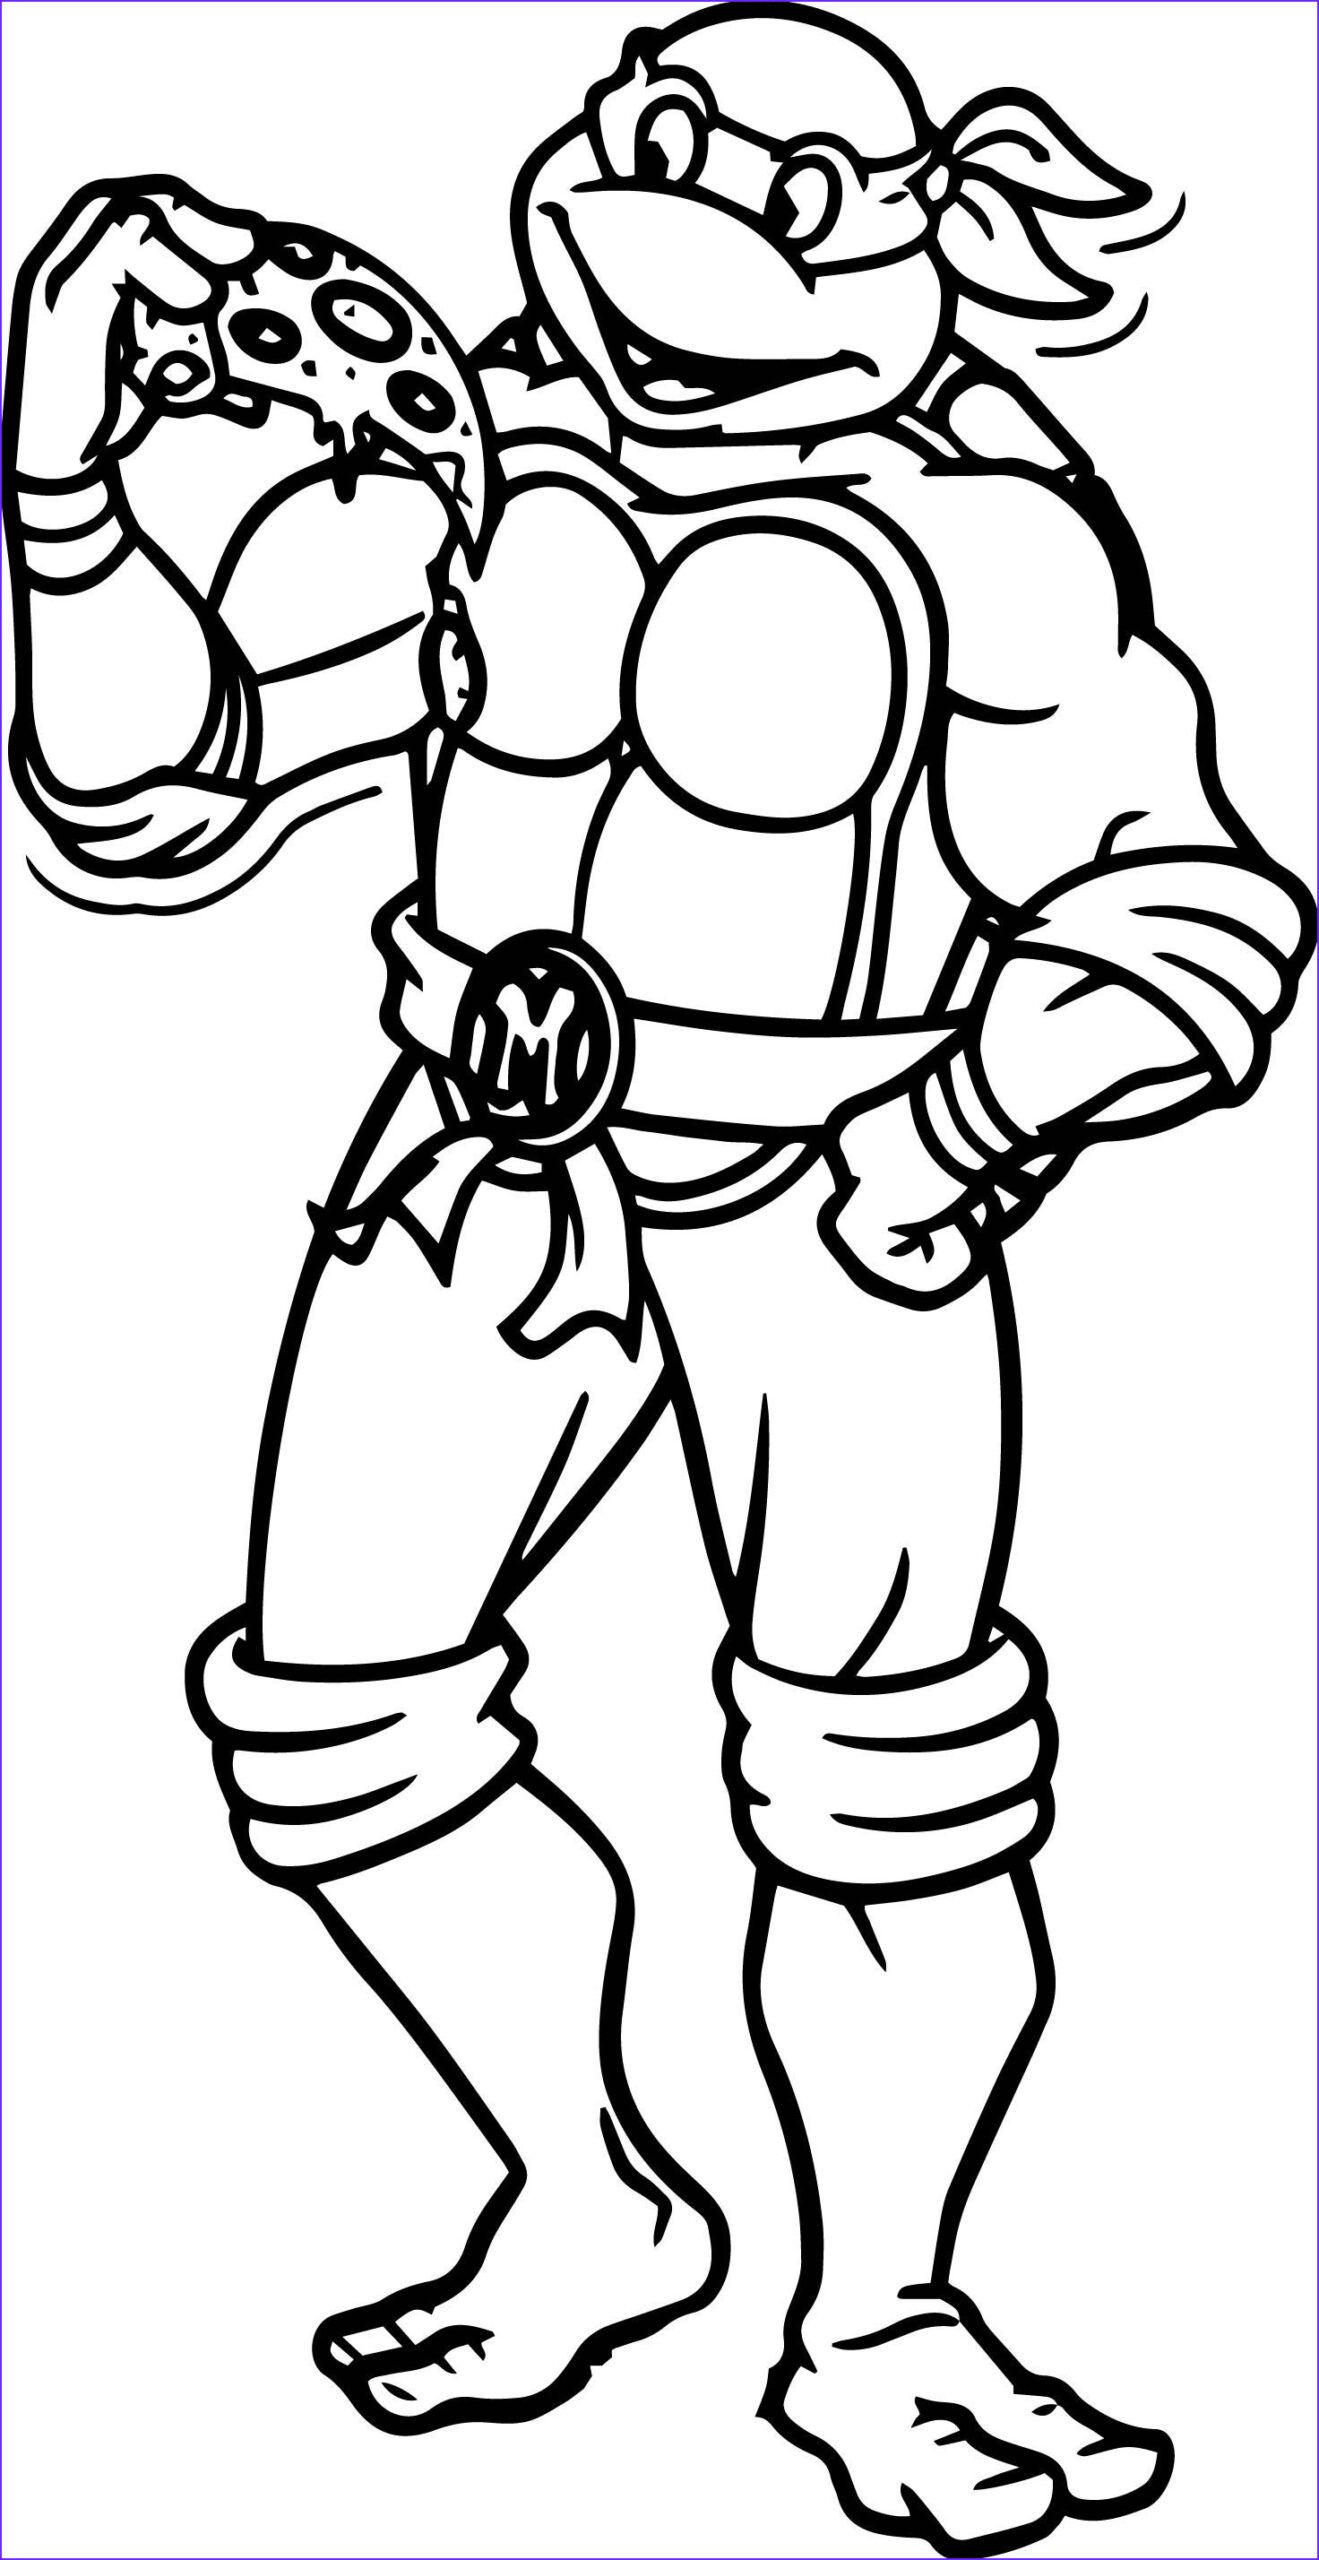 Teenage Ninja Turtle Coloring Pages Download Ninja Turtle Coloring Pages Turtle Coloring Pages Superhero Coloring Pages